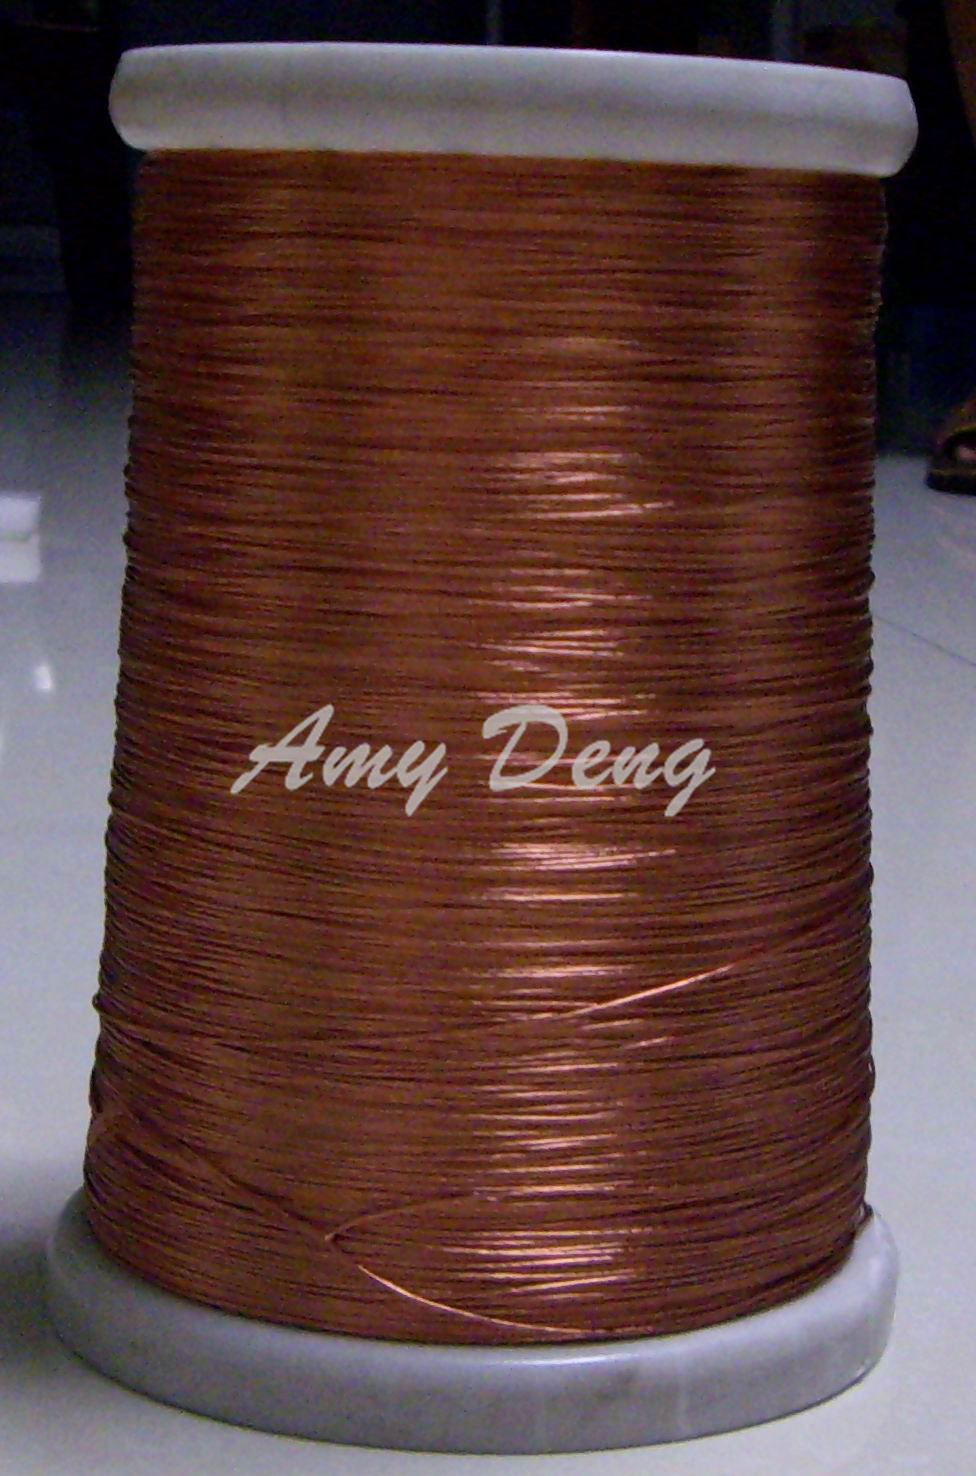 10 Meters/lot  0.2X160 Strand Twisted Pair Copper Stranded Wire Stranded Copper Stranded Wire